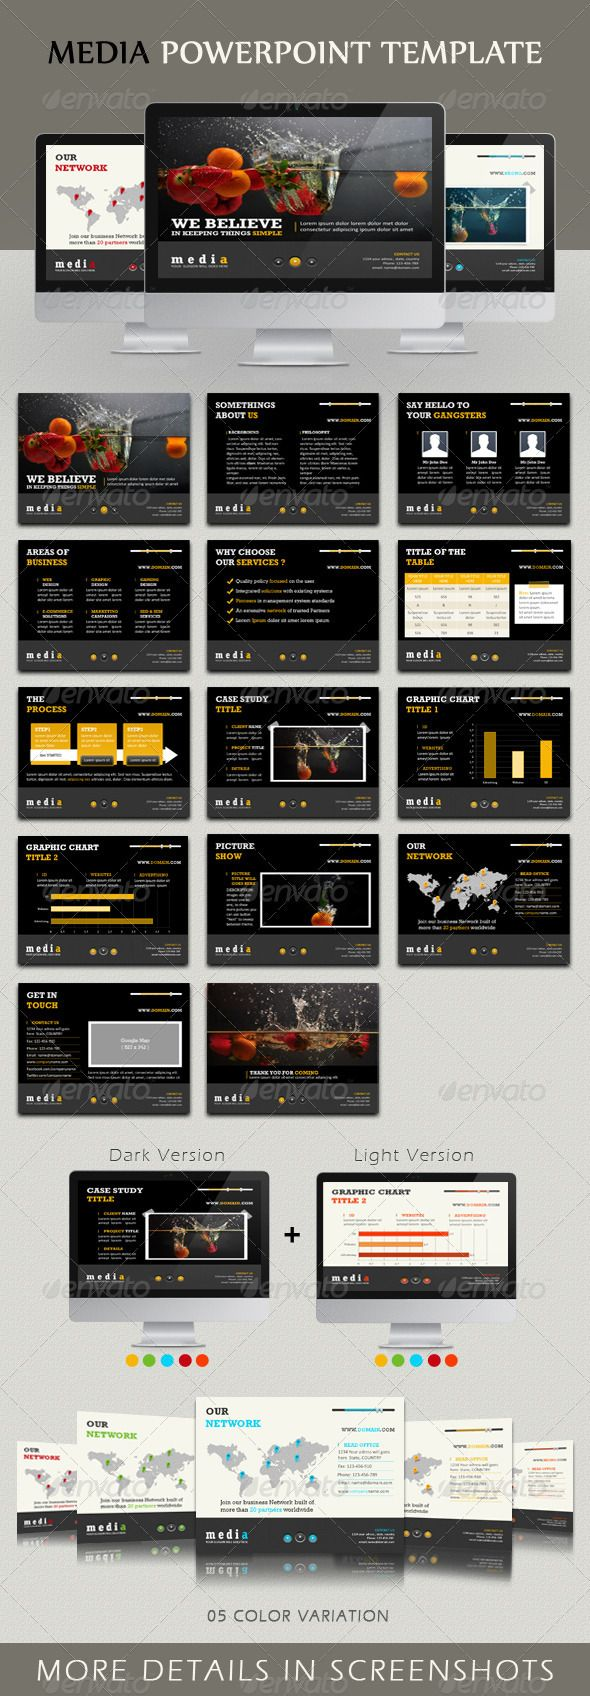 Media Powerpoint Template